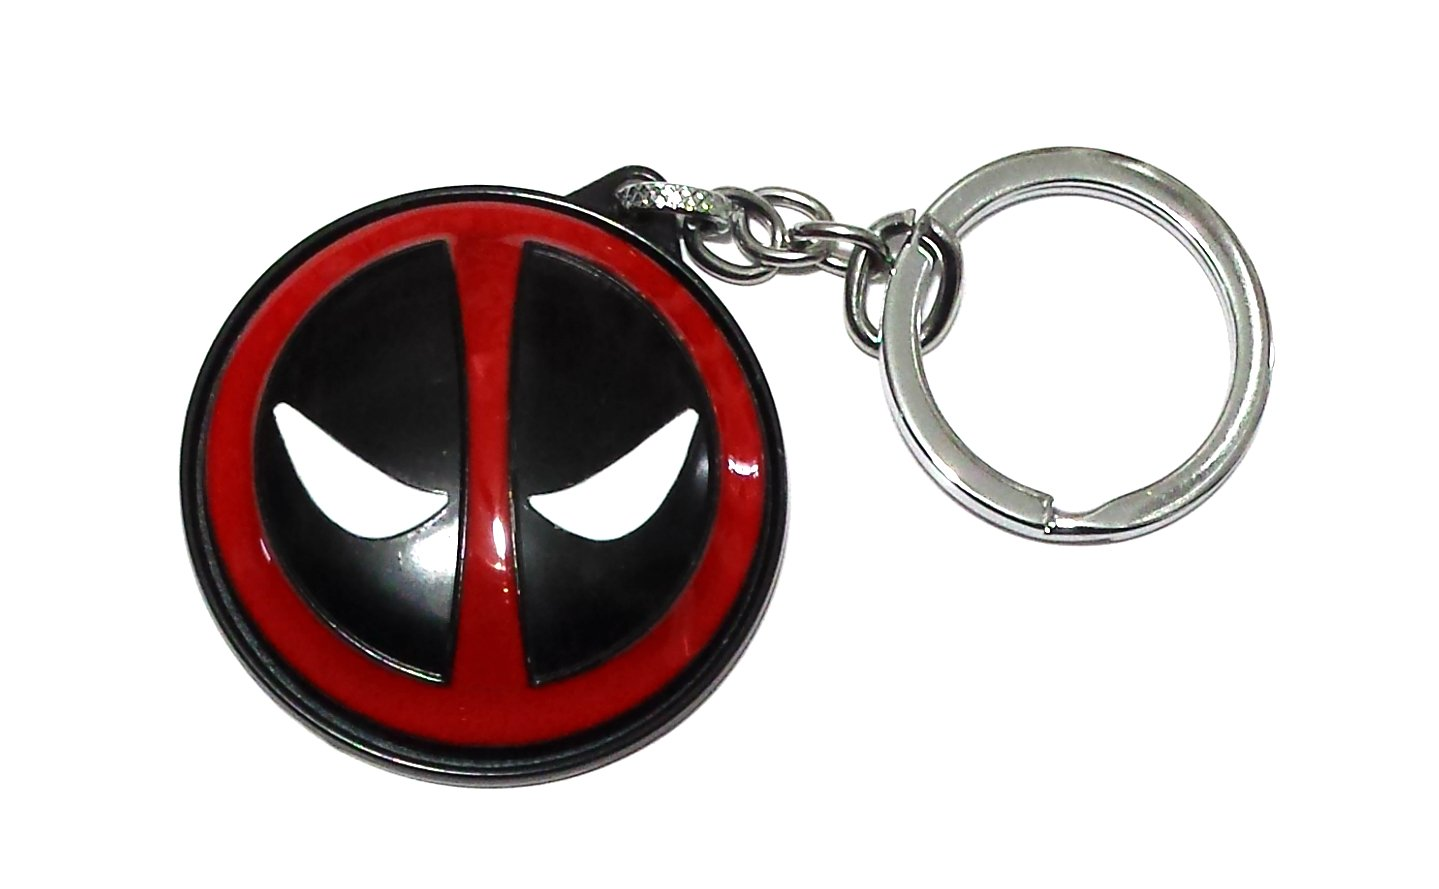 Amazon.com: J & C familiar marca Marvel Deadpool Spinner ...